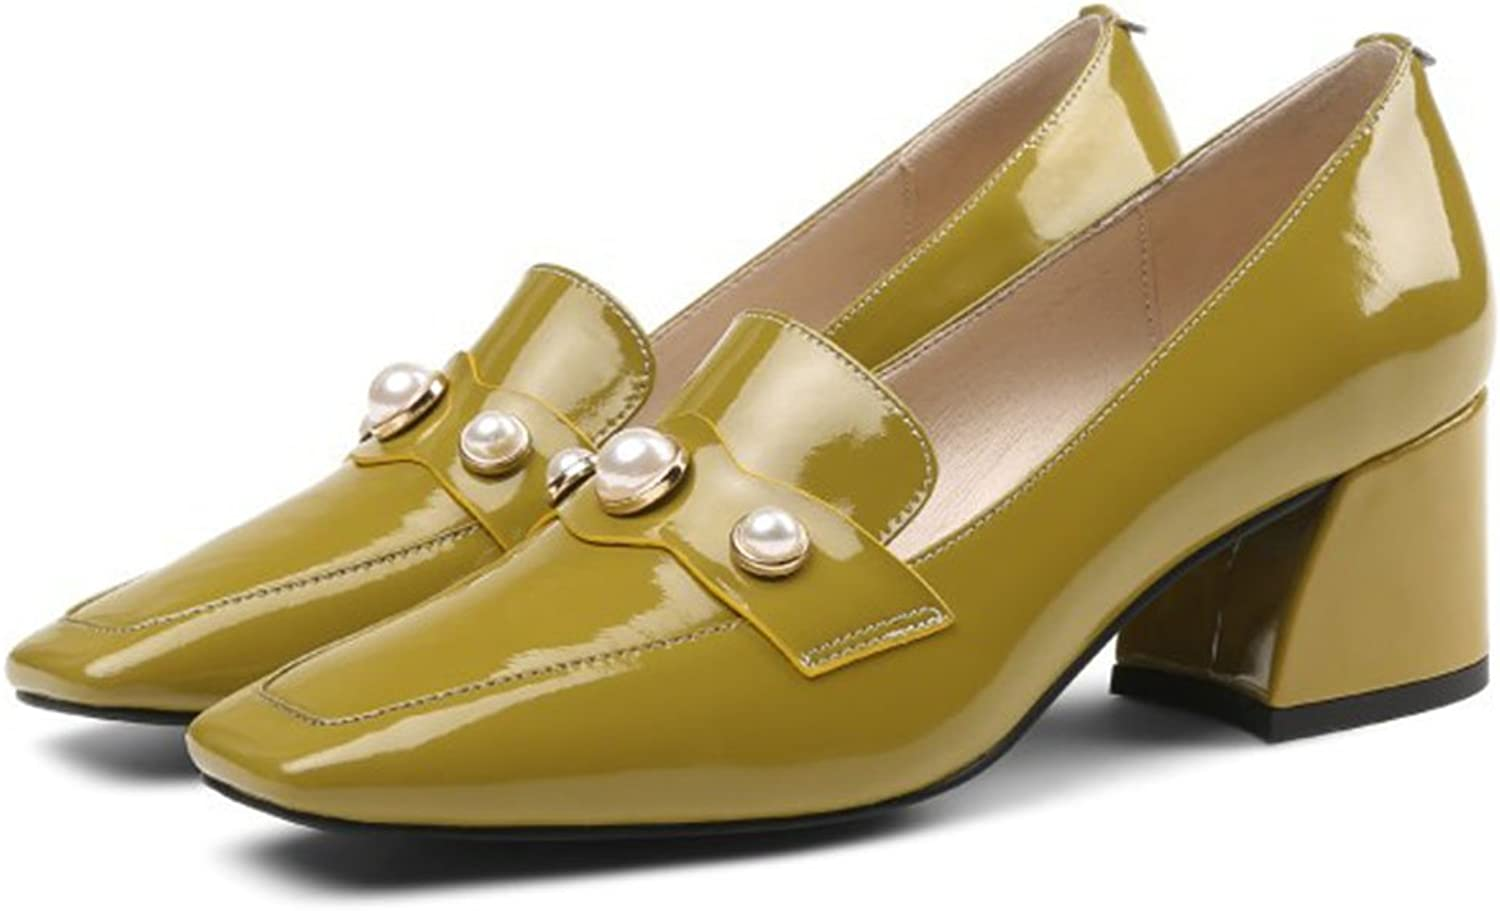 KTYXDE Women's shoes High Heels Thick with Single shoes British Wind Women's shoes Square Head with Single shoes Women's Large Size shoes Women's shoes (color   Mustard Yellow, Size   38 EU)